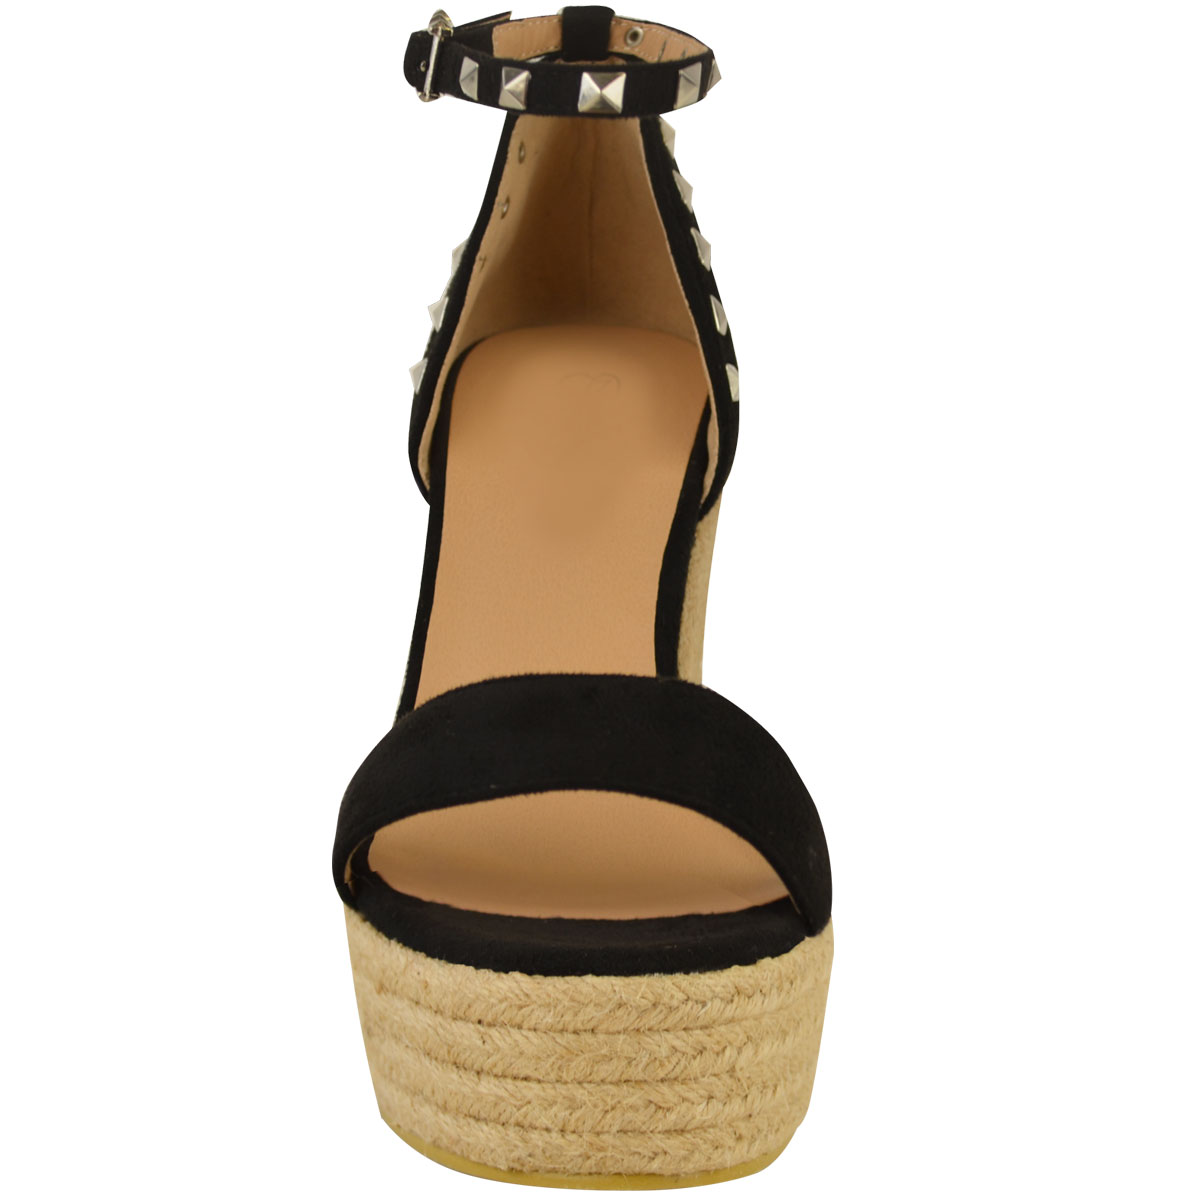 New-Womens-Stud-Espadrille-Wedge-Summer-Sandal-Ladies-Rose-Gold-Party-Shoes-Size thumbnail 5